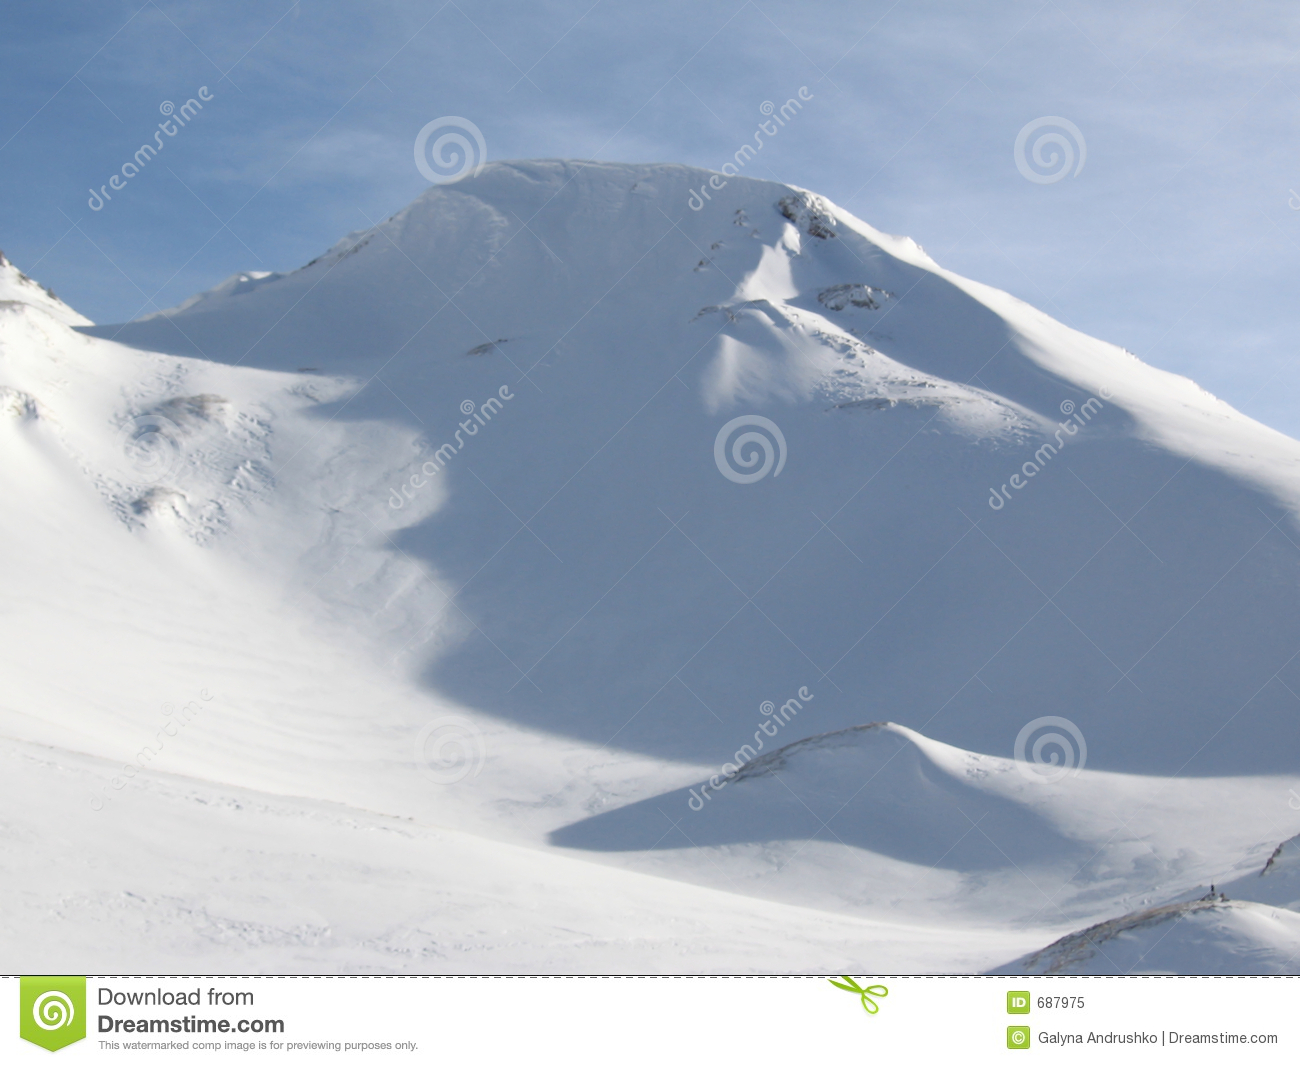 Snow hill royalty free stock photo image 687975